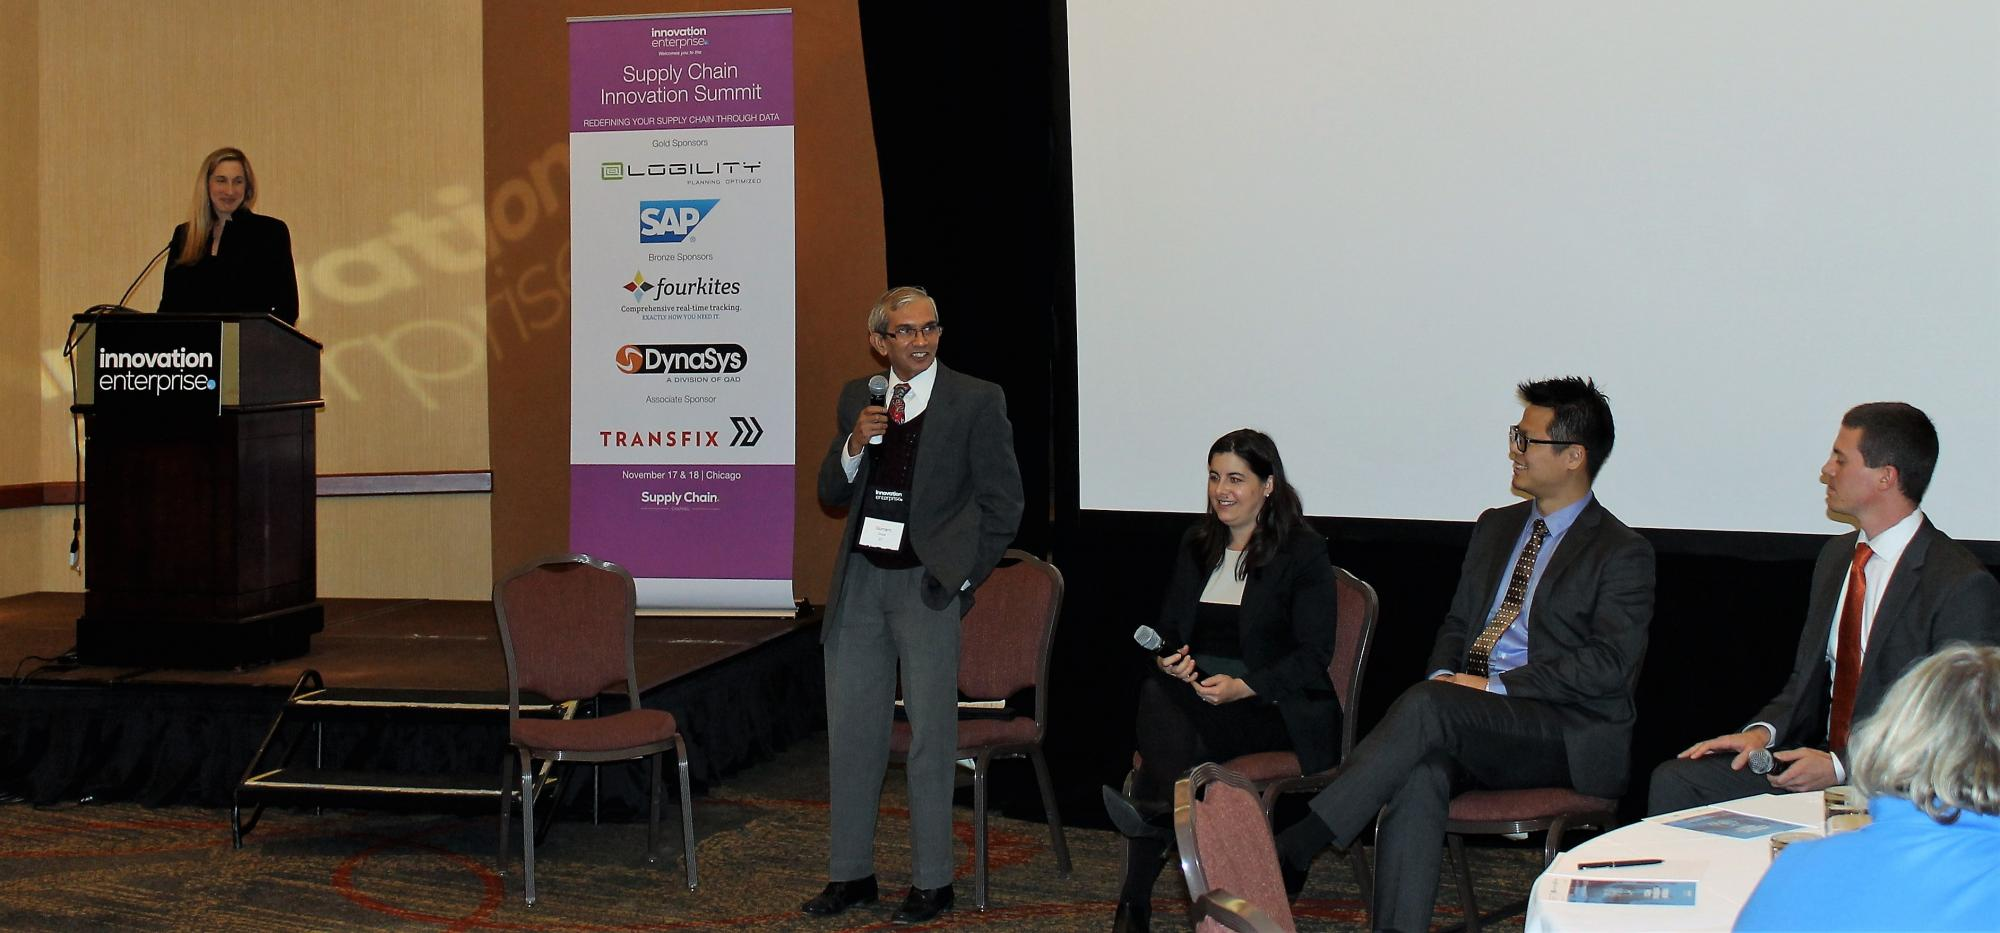 INTM's Gurram Gopal is a panelist at the Supply Chain Innovation Summit in Chicago